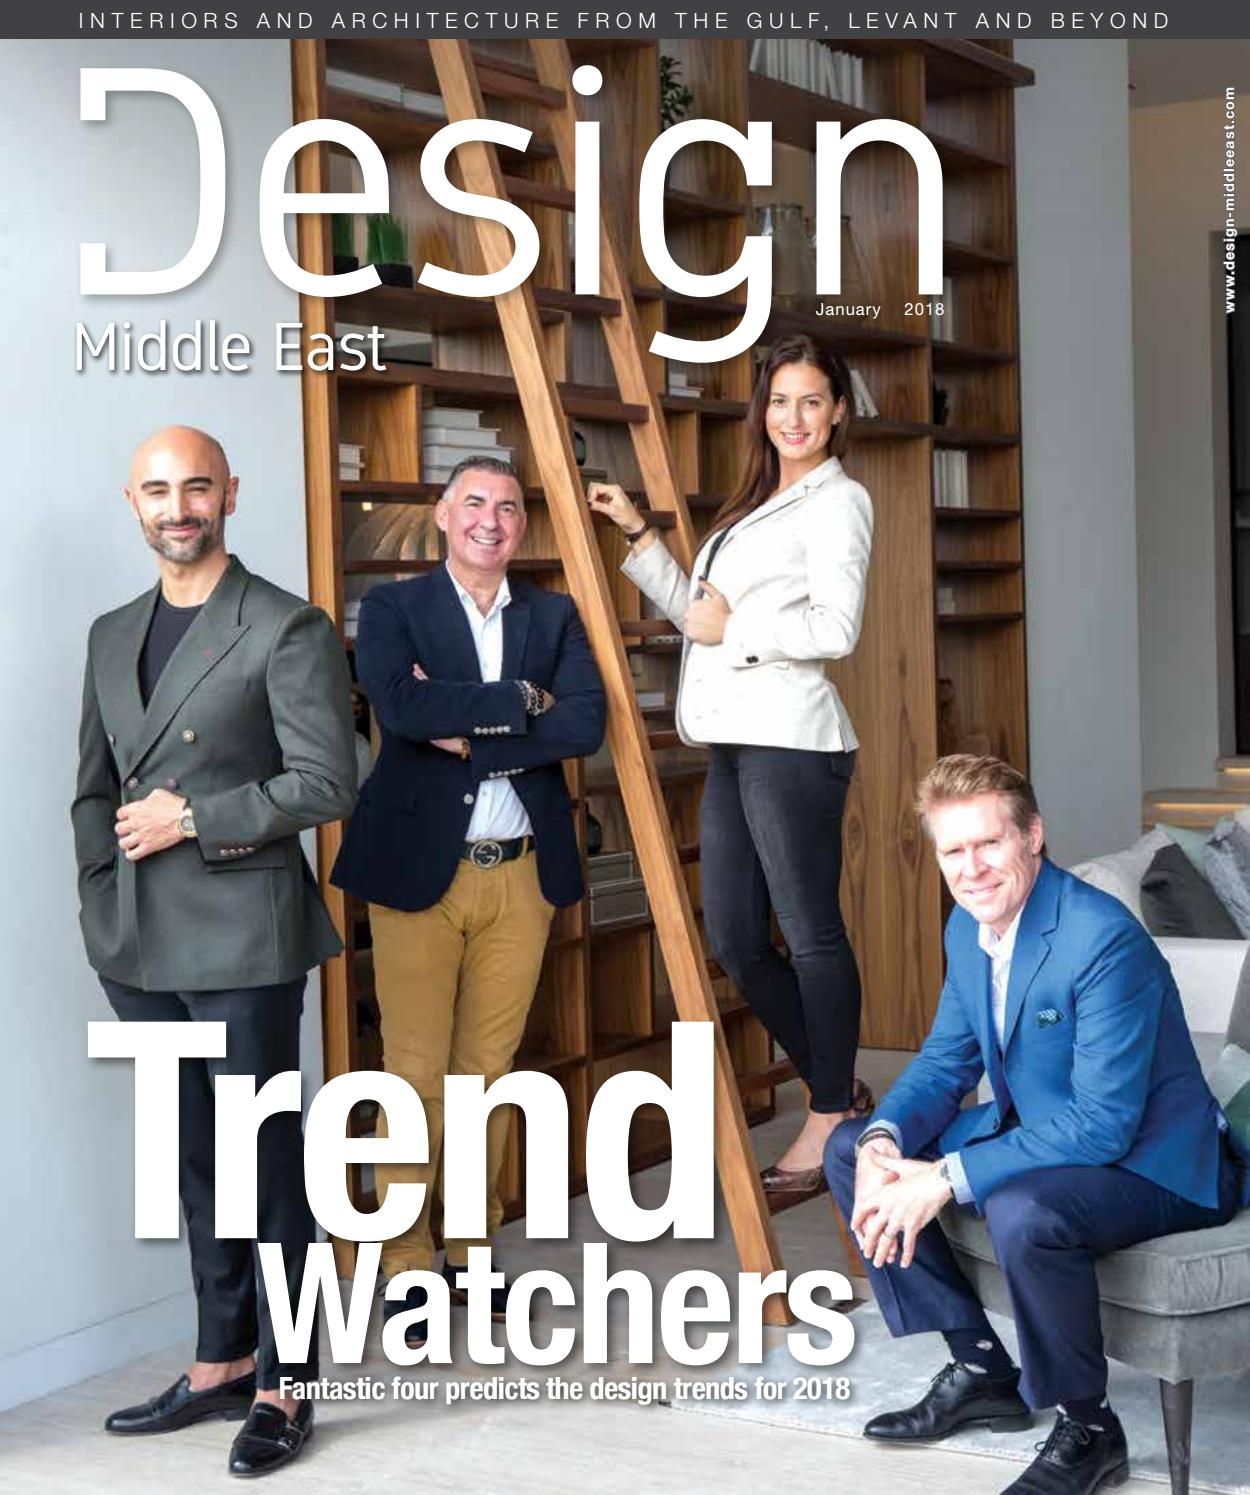 Design middle east january 2018 by design middle east issuu